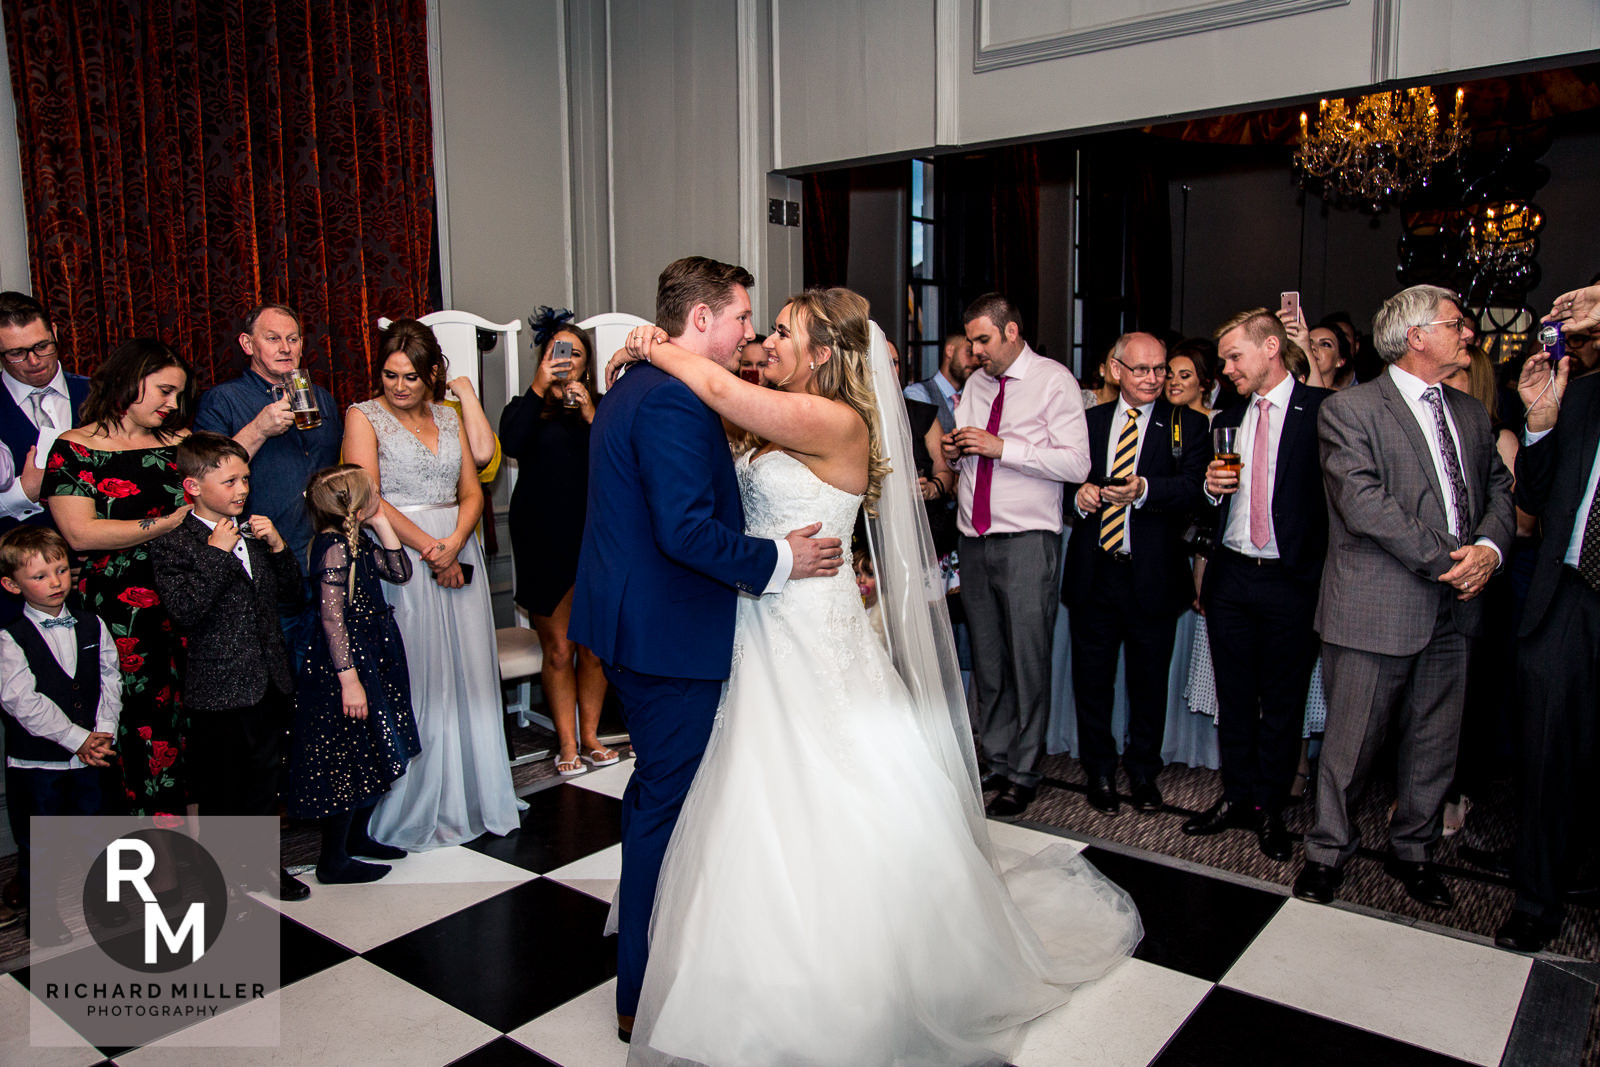 Dale Natalie Web 593 - An Awesome Chester Wedding at Oddfellows